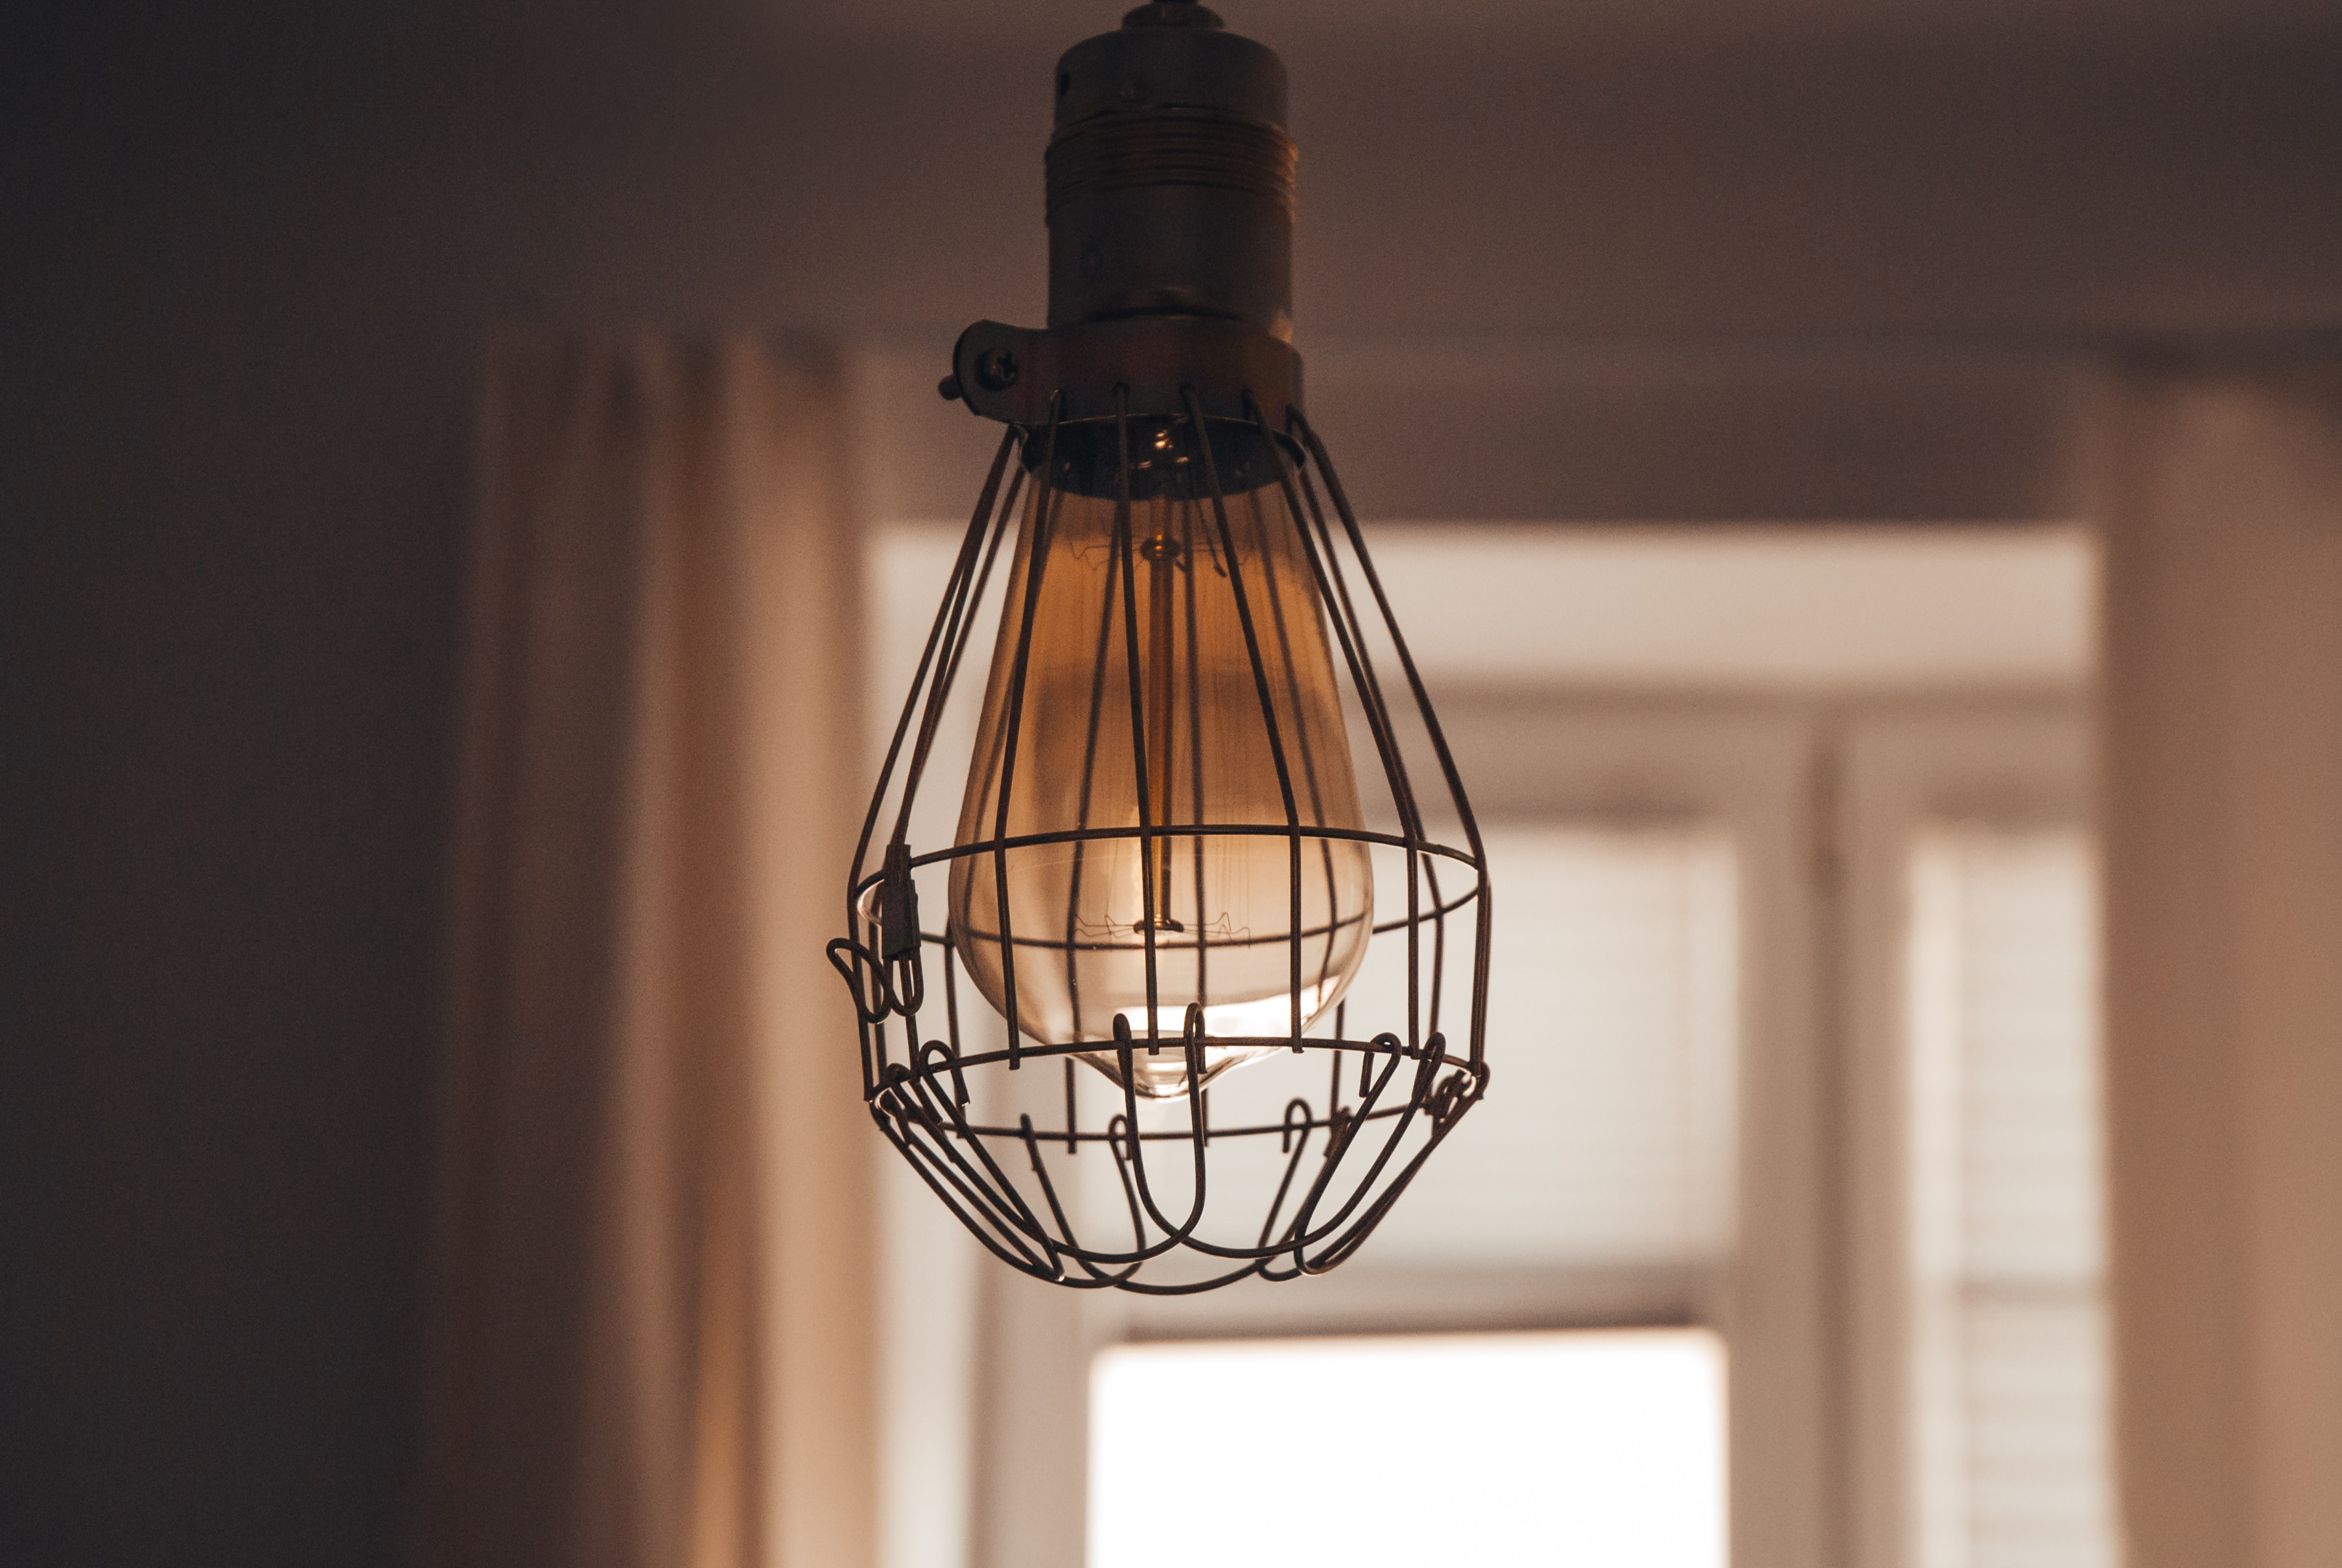 Vintage lightbulb in wire cage casing hanging from a room ceiling